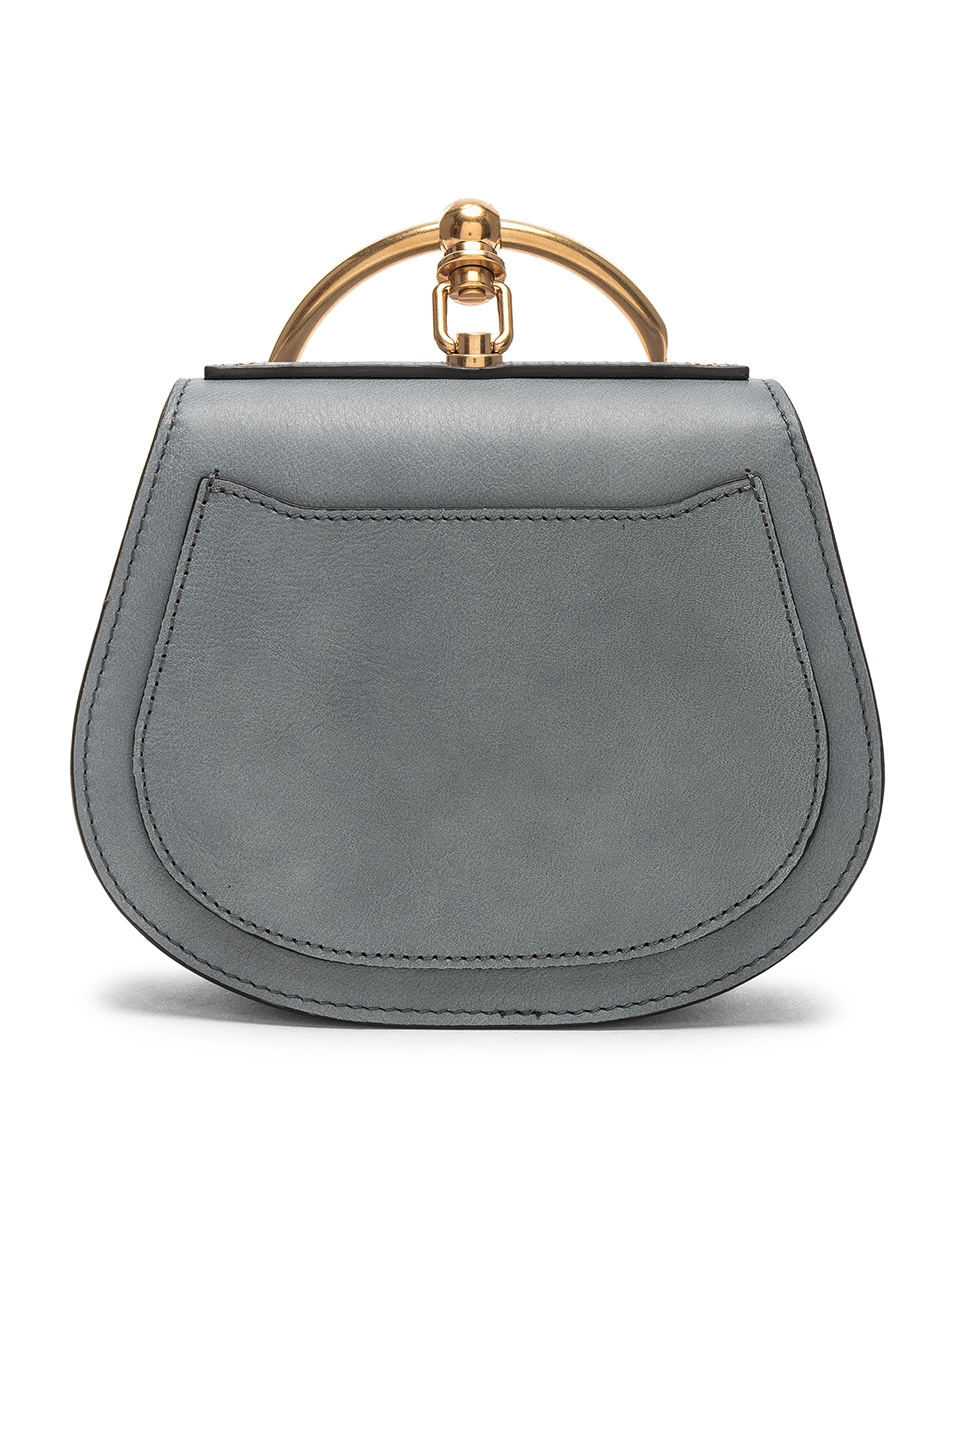 Image 3 of Chloe Small Nile Bracelet Bag Calfskin & Suede in Cloudy Blue